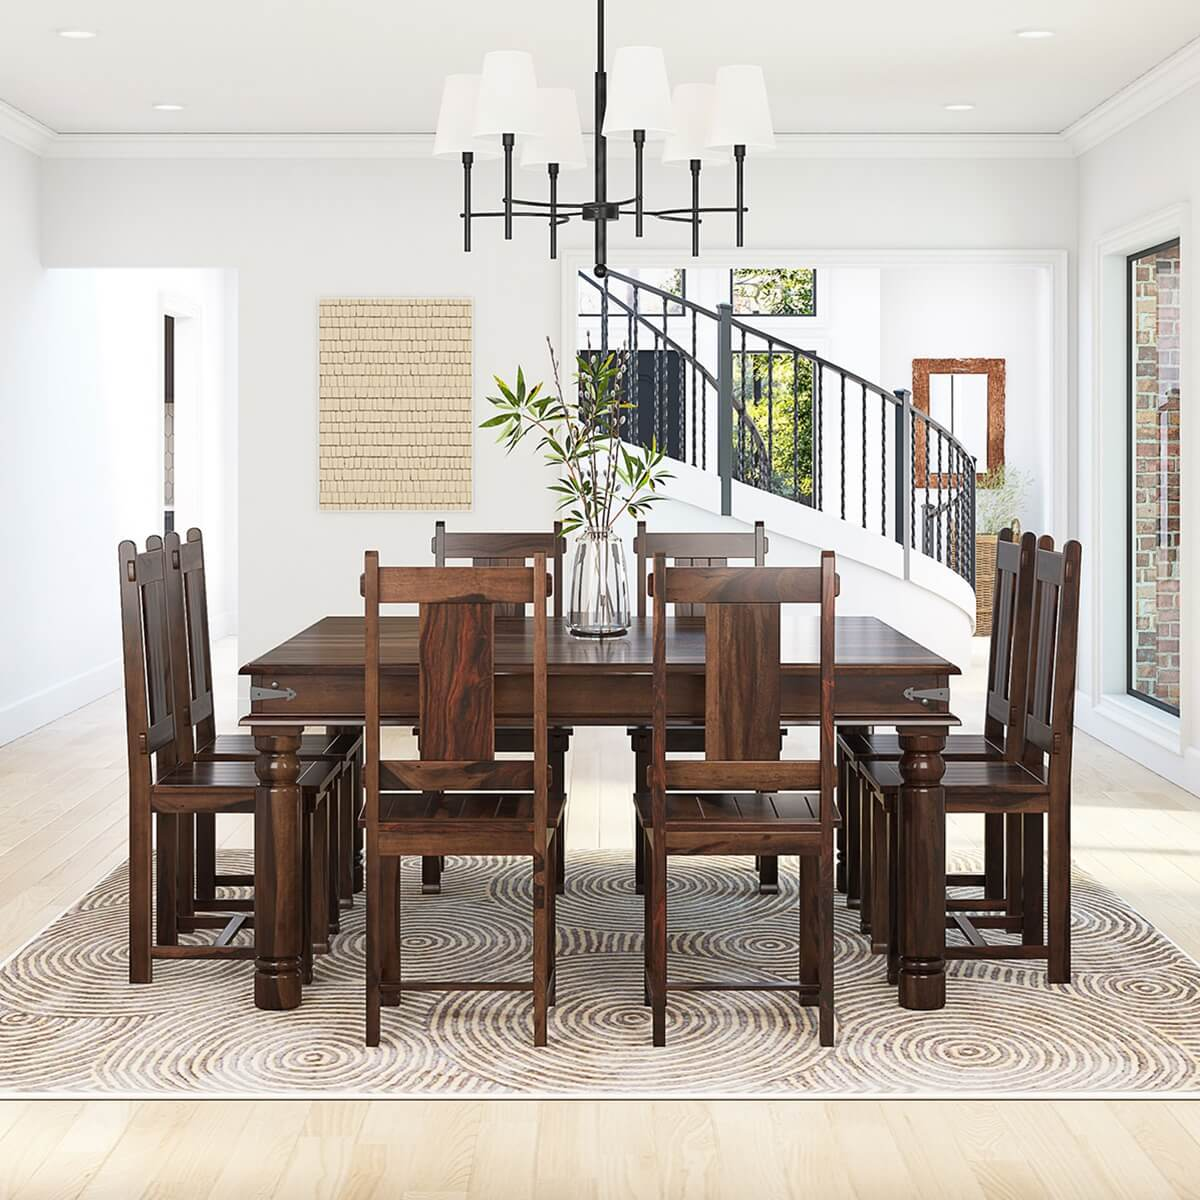 Richmond rustic solid wood large square dining room table chair set Wooden dining table and chairs